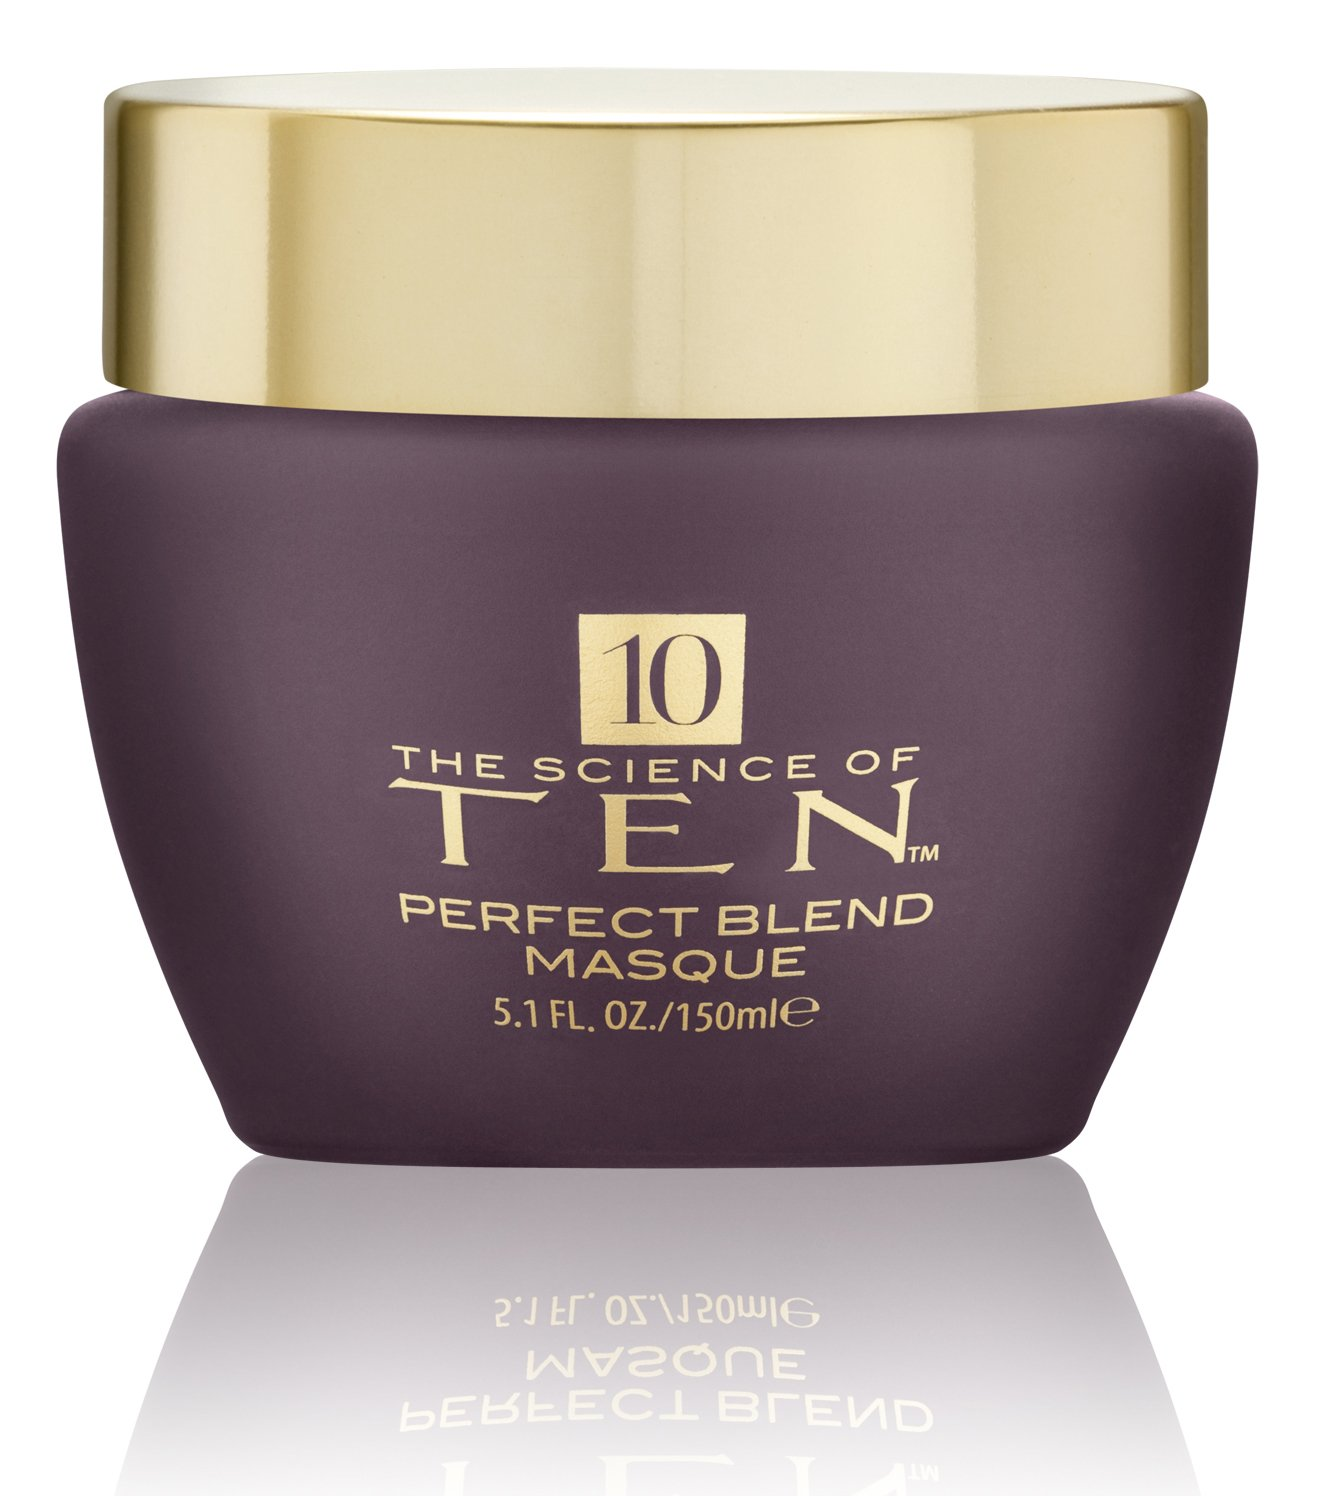 The Science of Ten Perfect Blend Masque by Alterna for Unisex - 5.1 oz Masque 52675